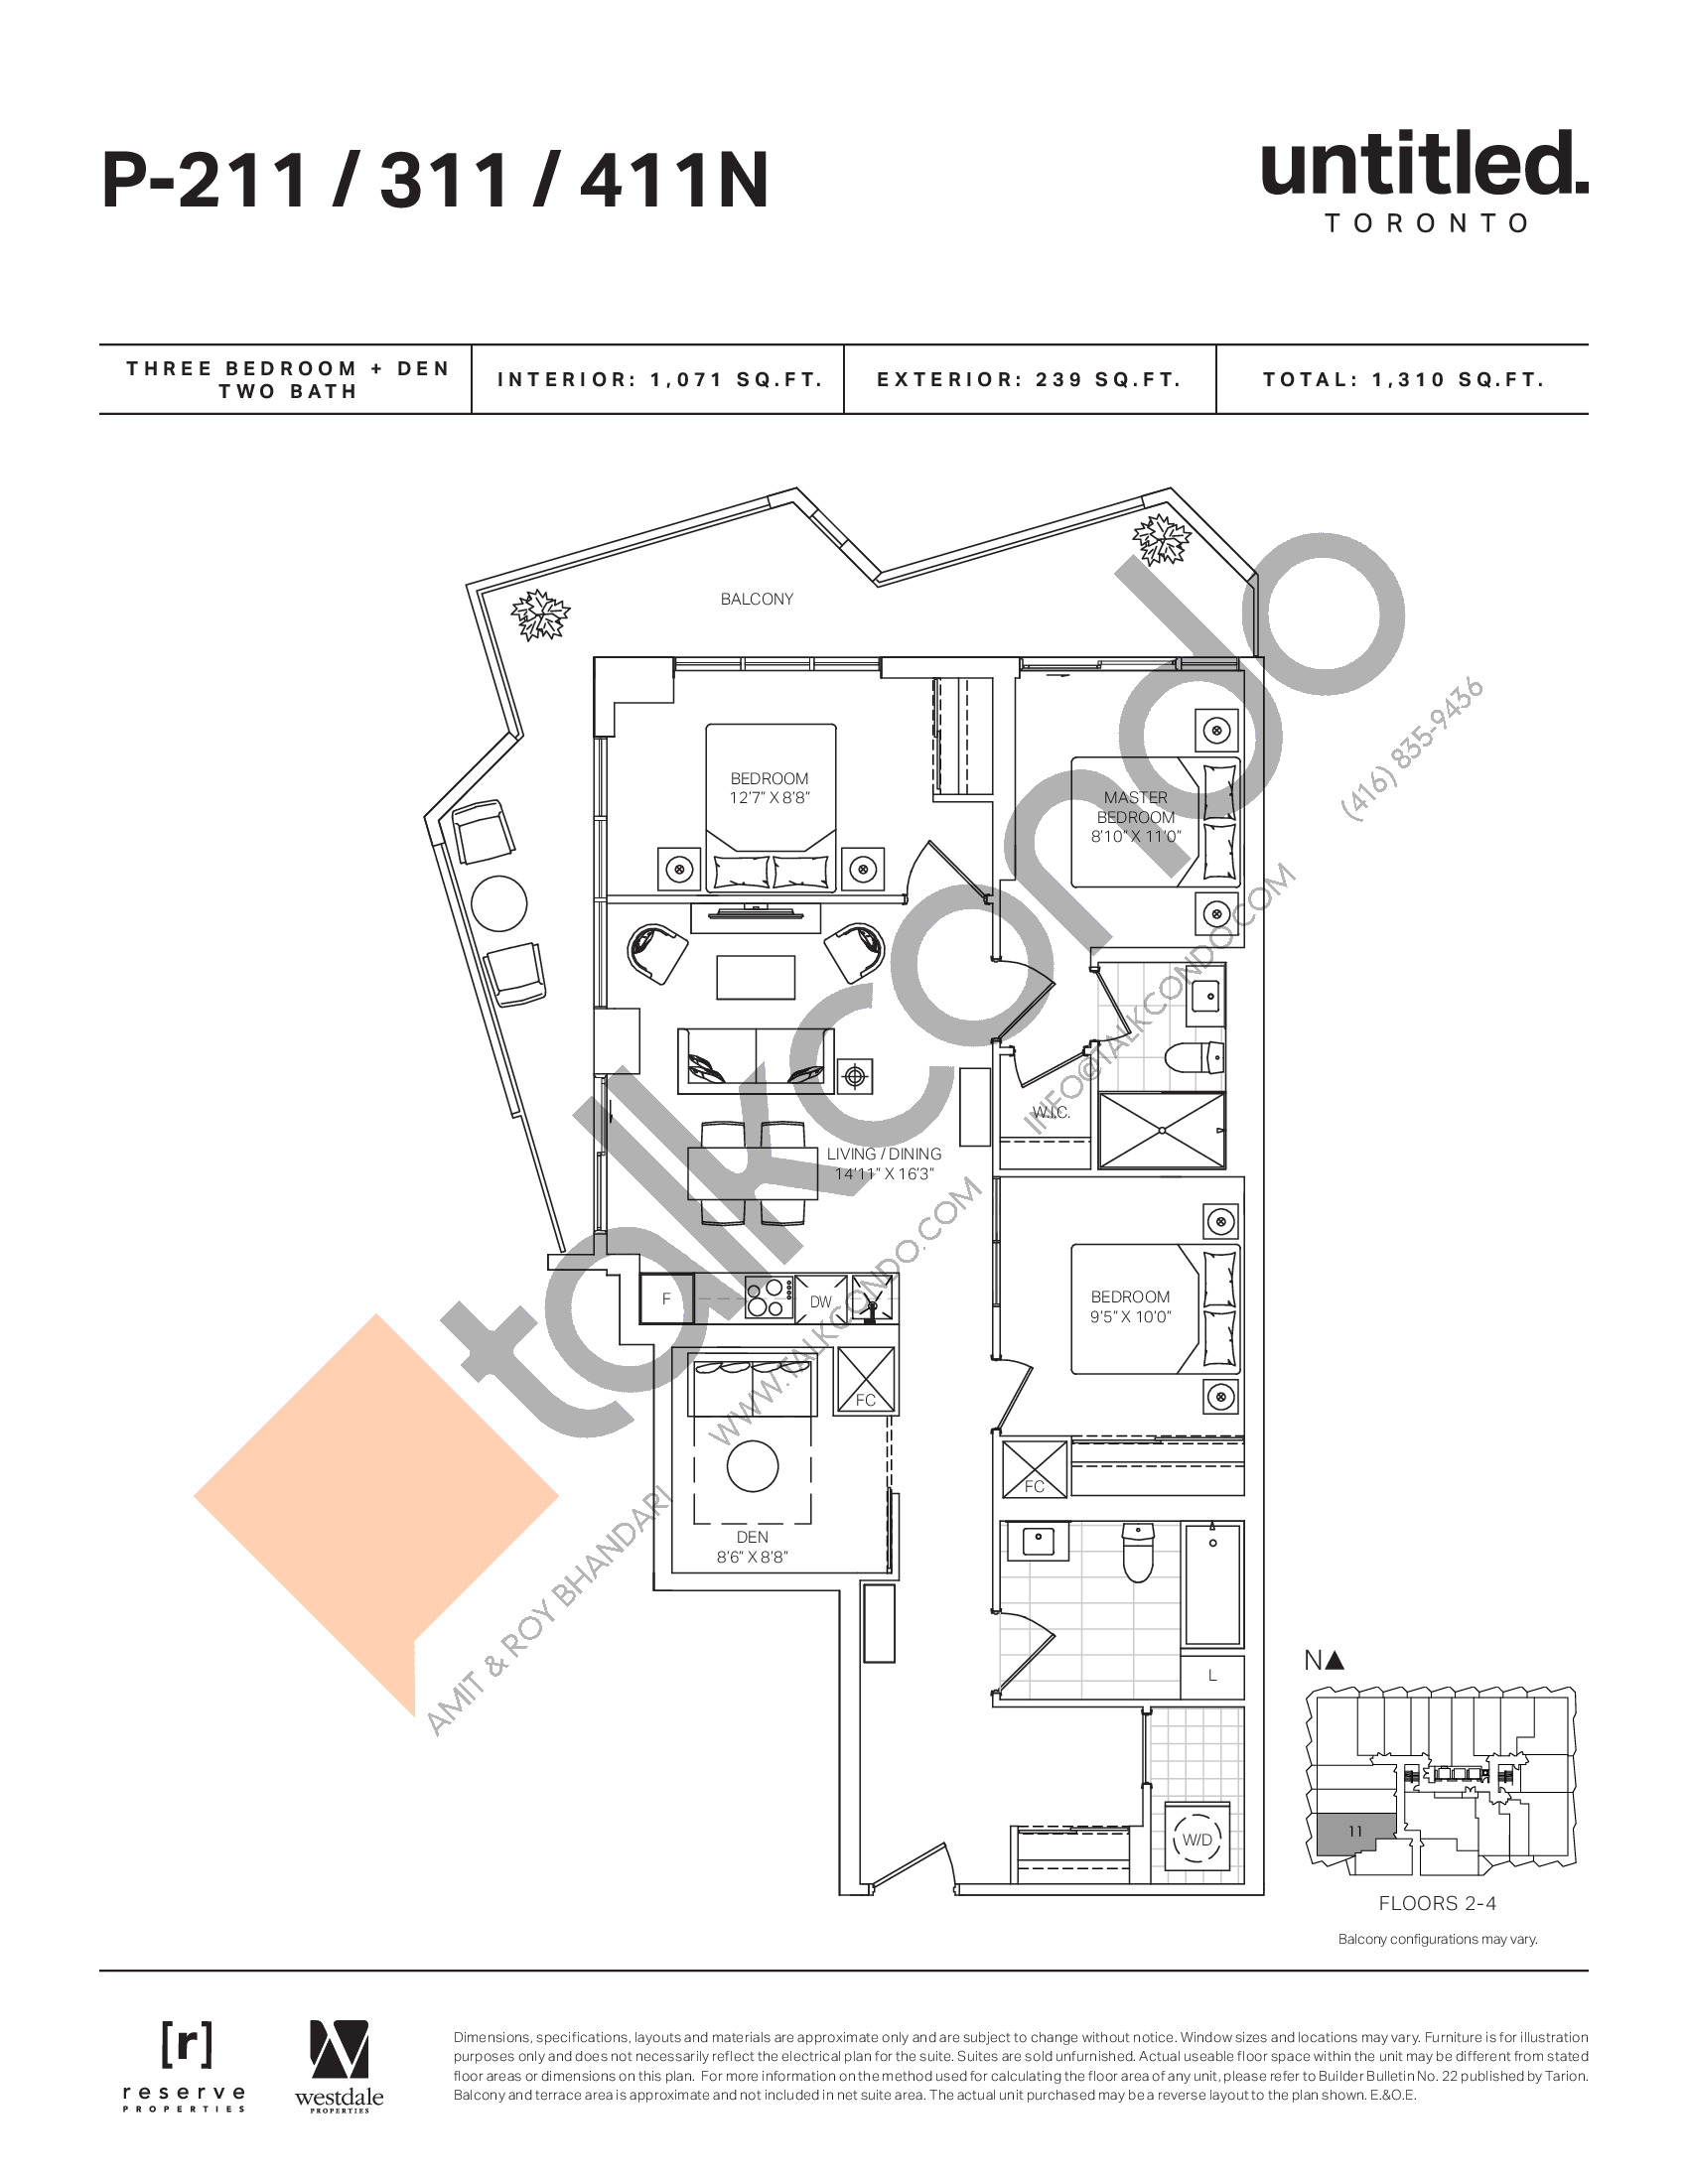 P-211/311/411N Floor Plan at Untitled North Tower Condos - 1071 sq.ft